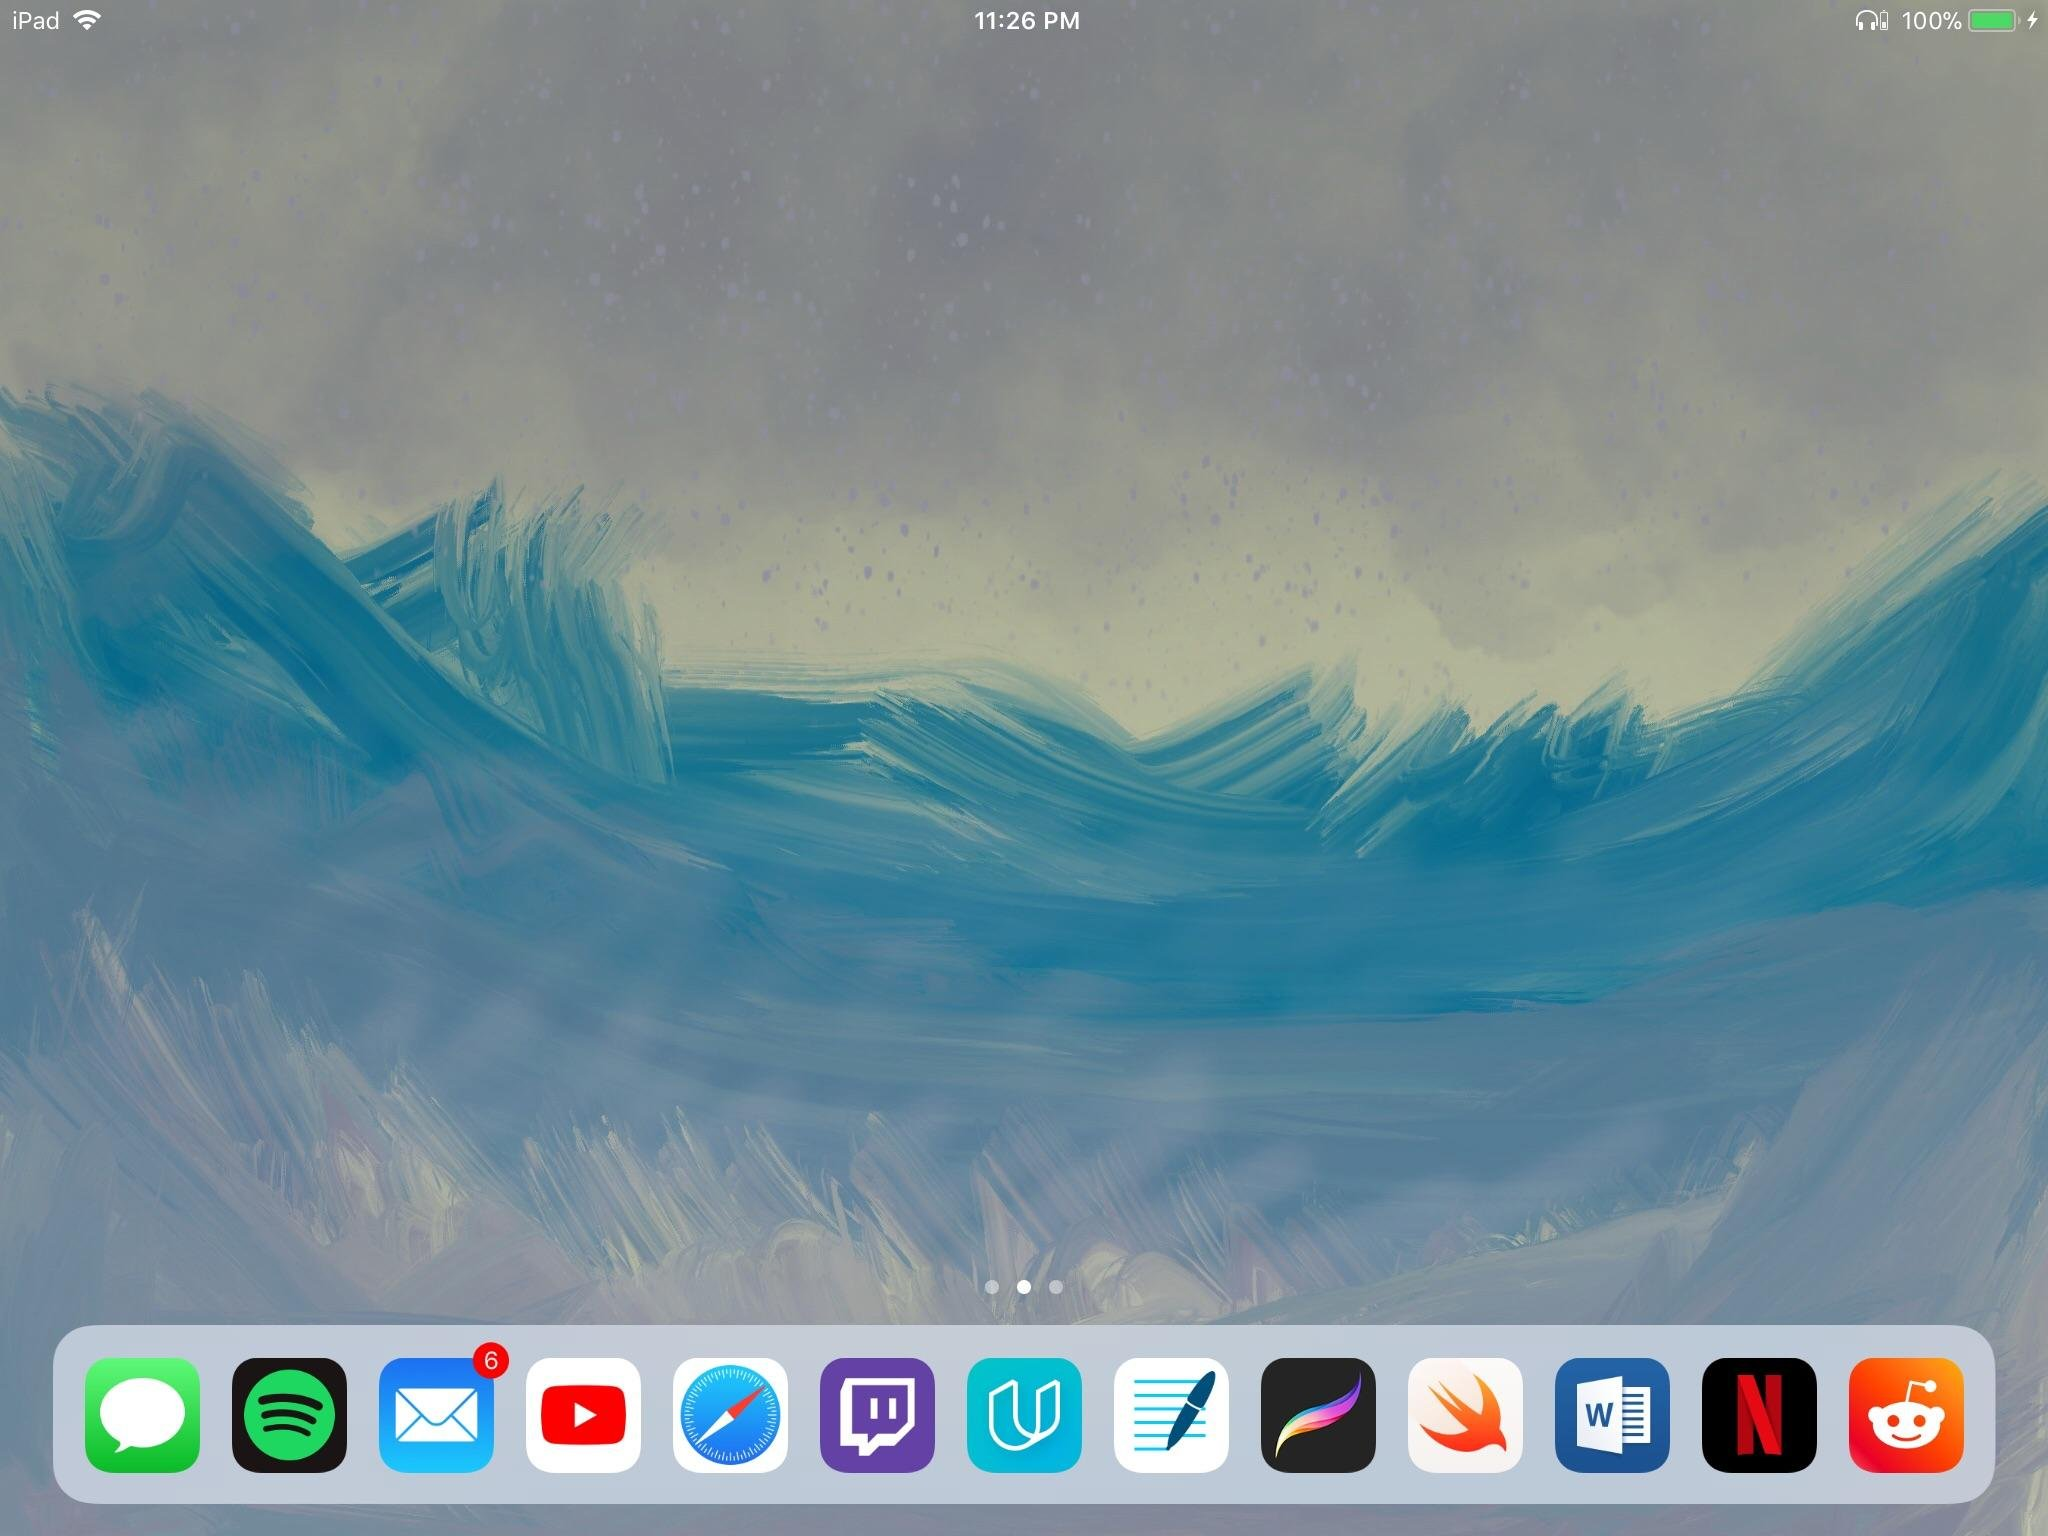 Went for a simplistic mac looking setup for my iPad and I'm very satisfied :) went-for-a-simplistic-mac-looking-setup-for-my-ipad-and-im-very-satisfied